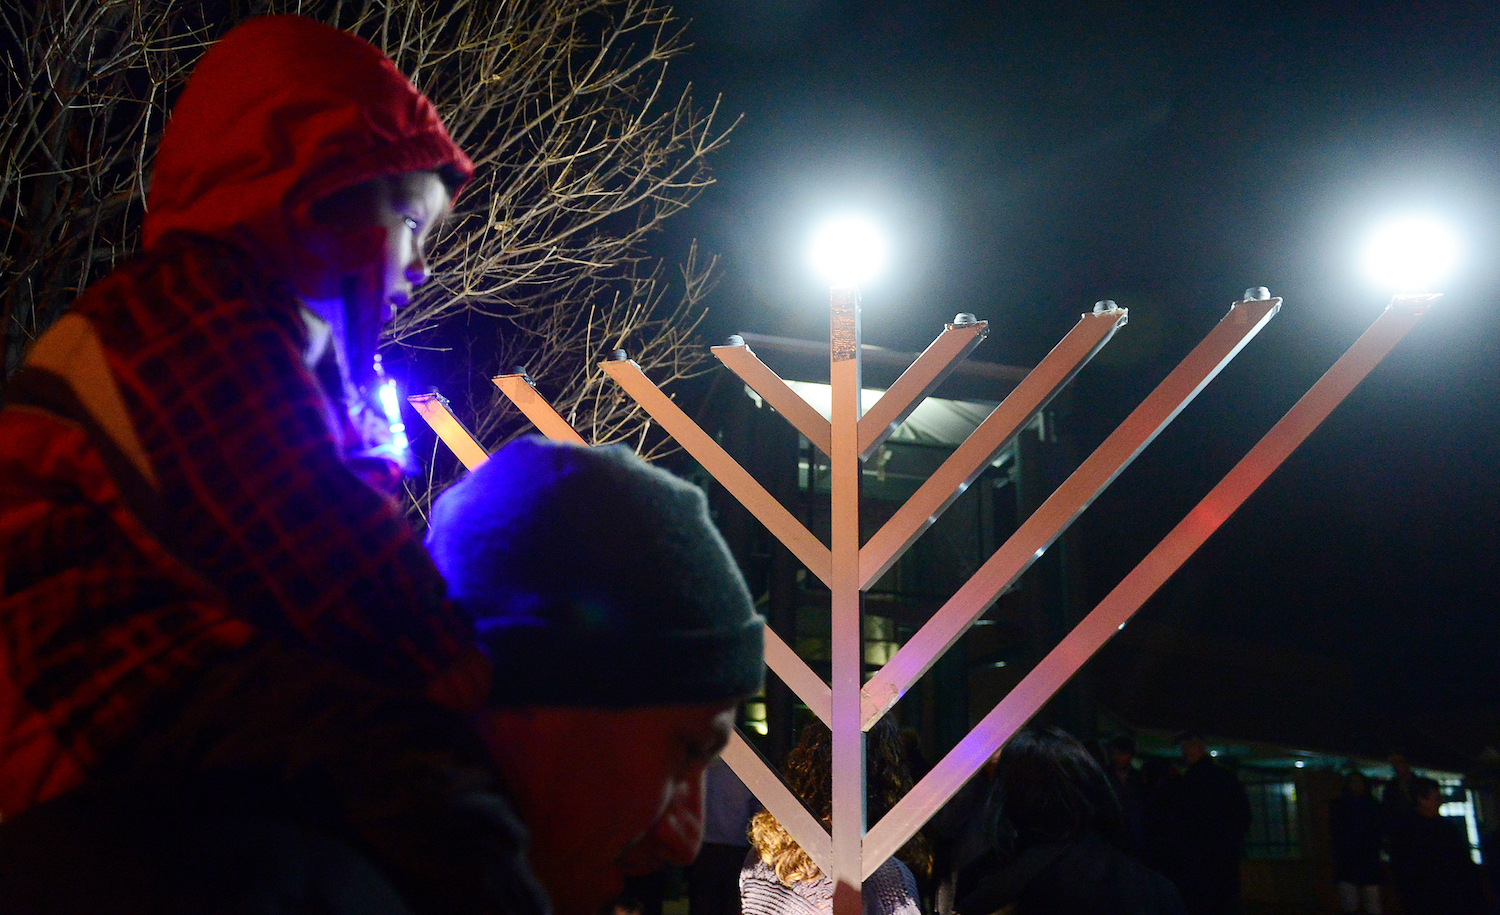 A child on his father's shoulders on the first night of Hanukkah. Brent Lewis/The Denver Post via Getty Images.